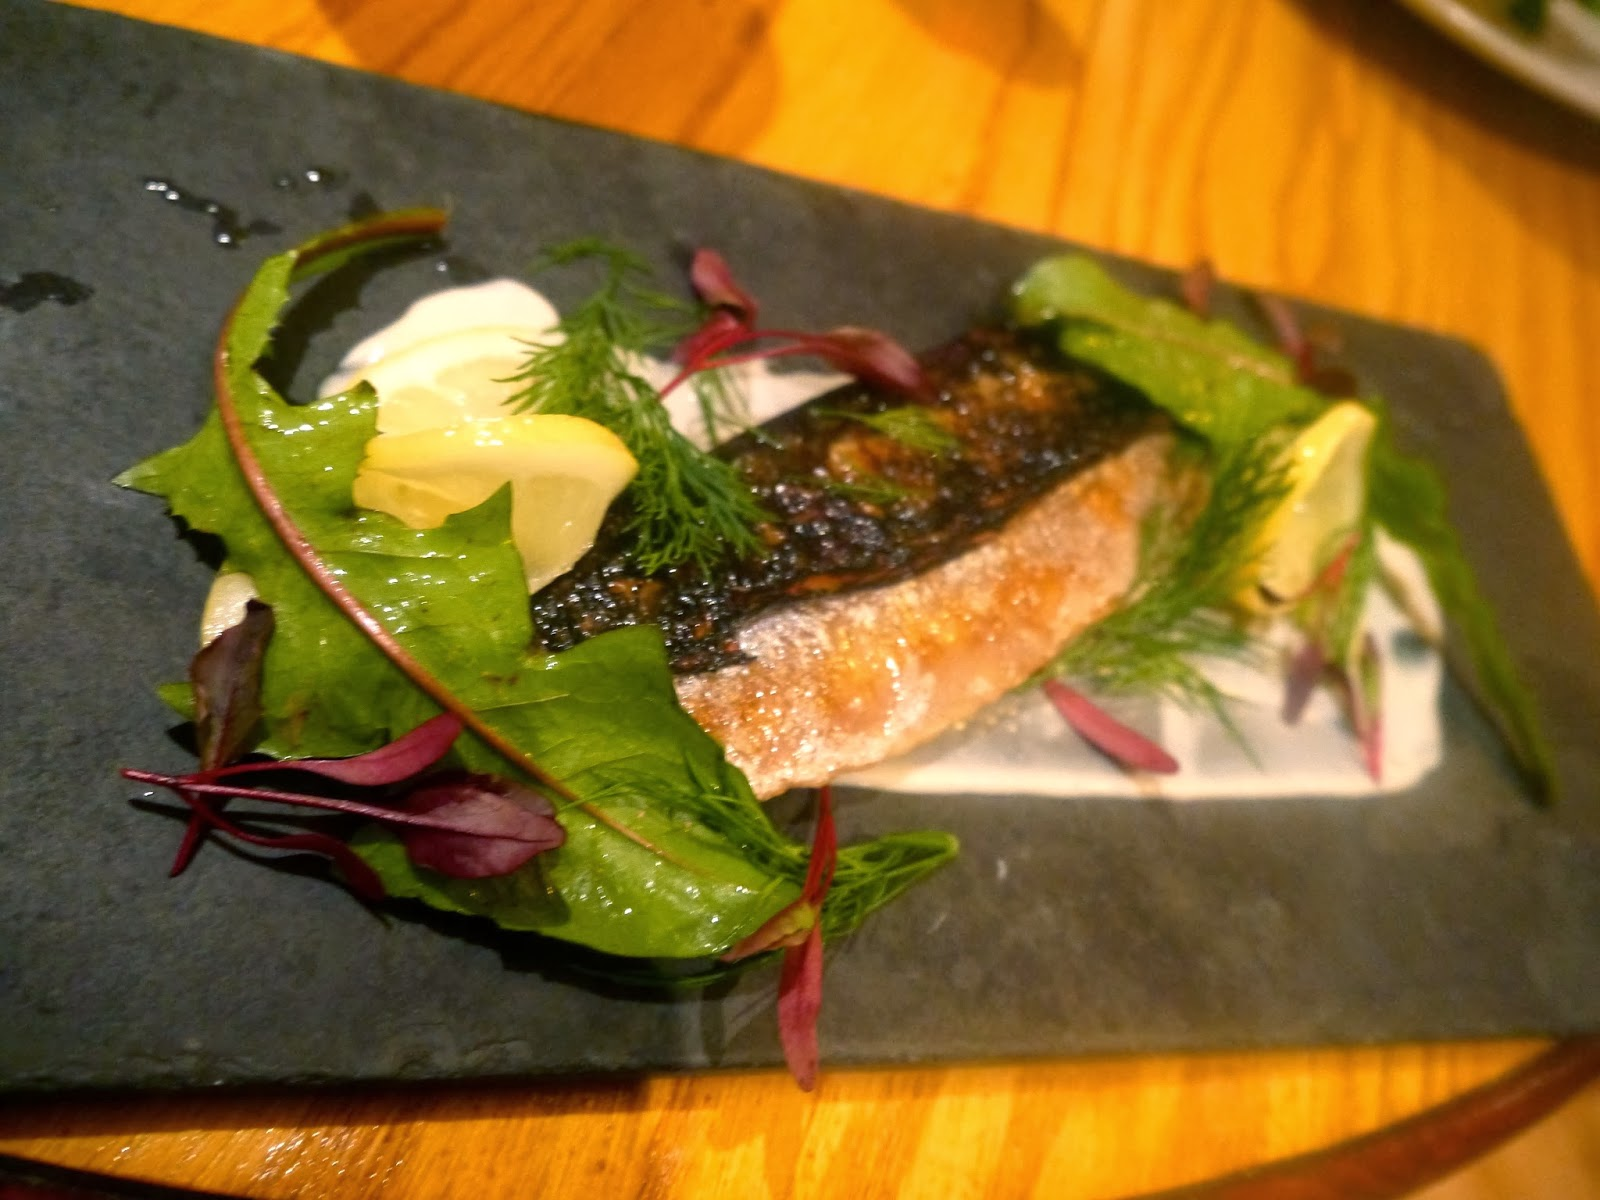 Flame grilled mackerel at The Discovery, Cardiff